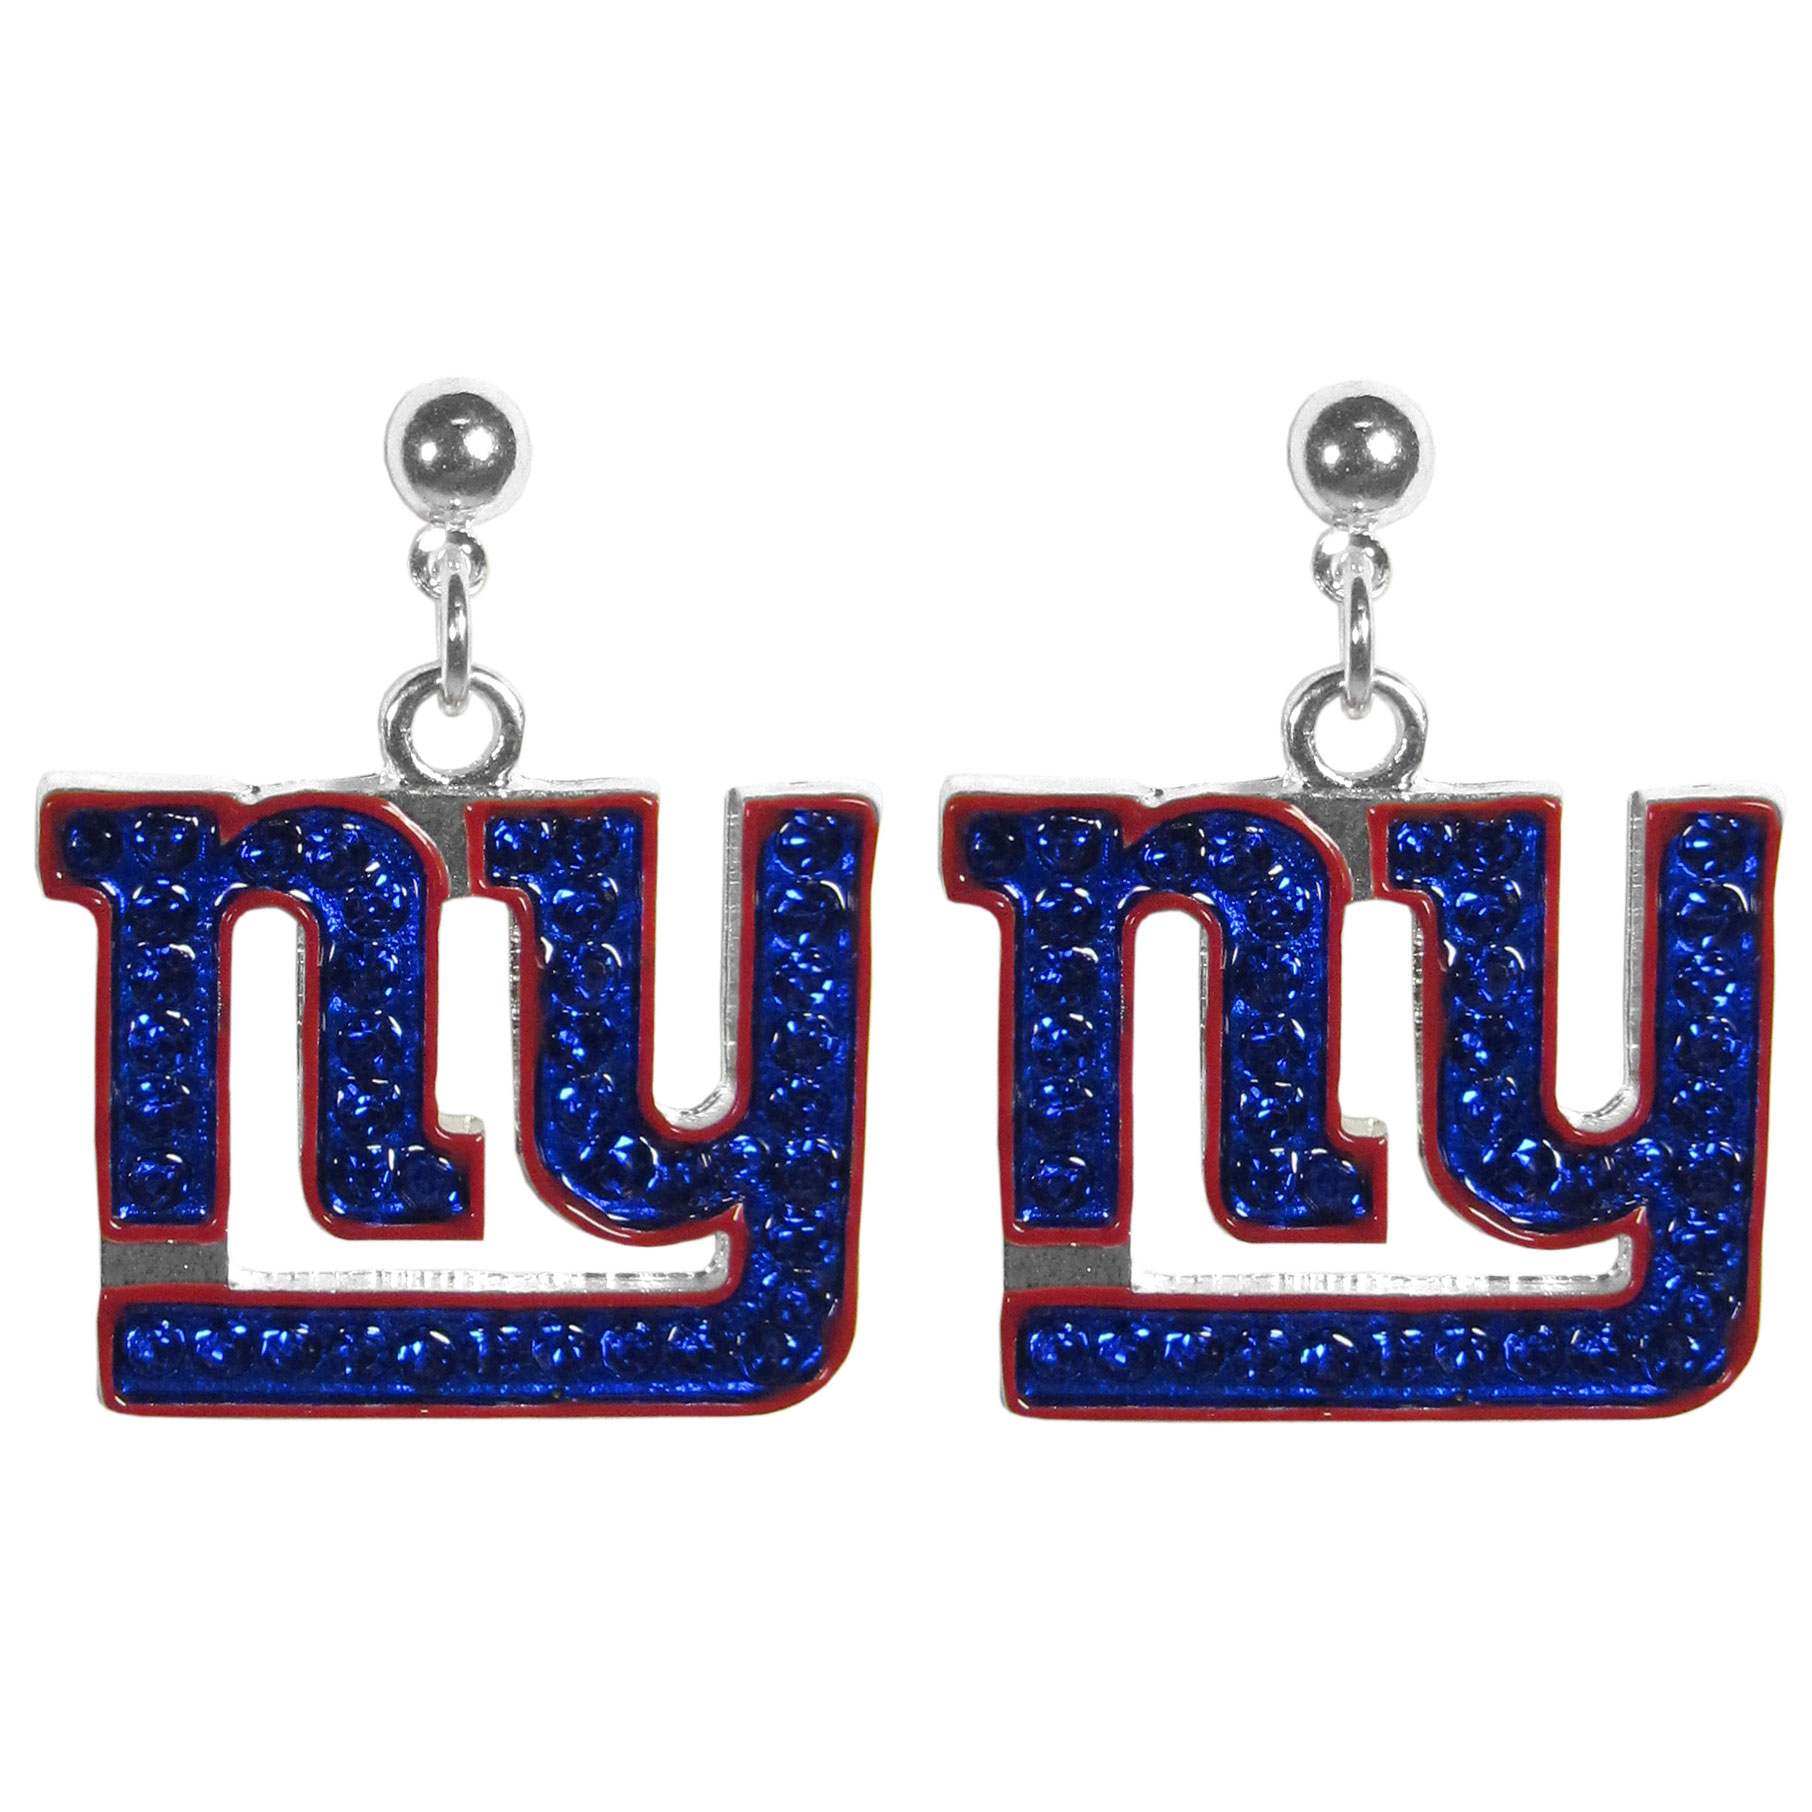 New York Giants Crystal Stud Earrings - These sporty stud earrings have beautiful crystal enlaided New York Giants charms that hang from the stud posts so that you have the best of both the dangle earring style with the comfort of the secure stud posts. The trendy charms are silver plated with colorful detail and are absolutely covered in team colored charms. The classy earrings feature hypo-allergenic posts.